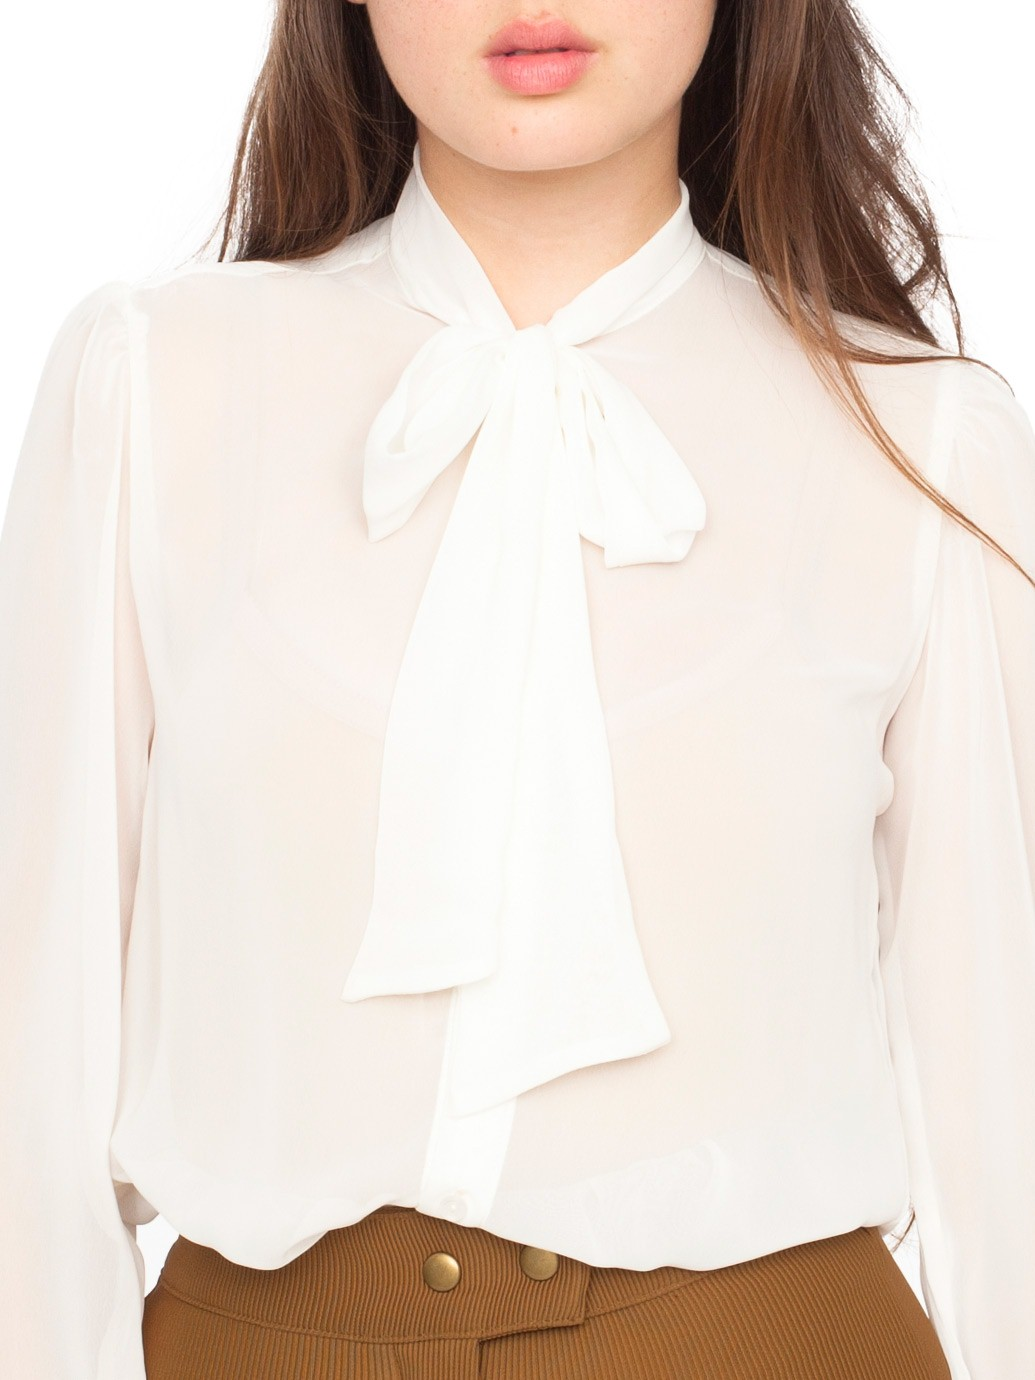 american apparel, chiffon classic top, bow blouse, online shopping, ladies blouse, how to make a simple shirt sexy